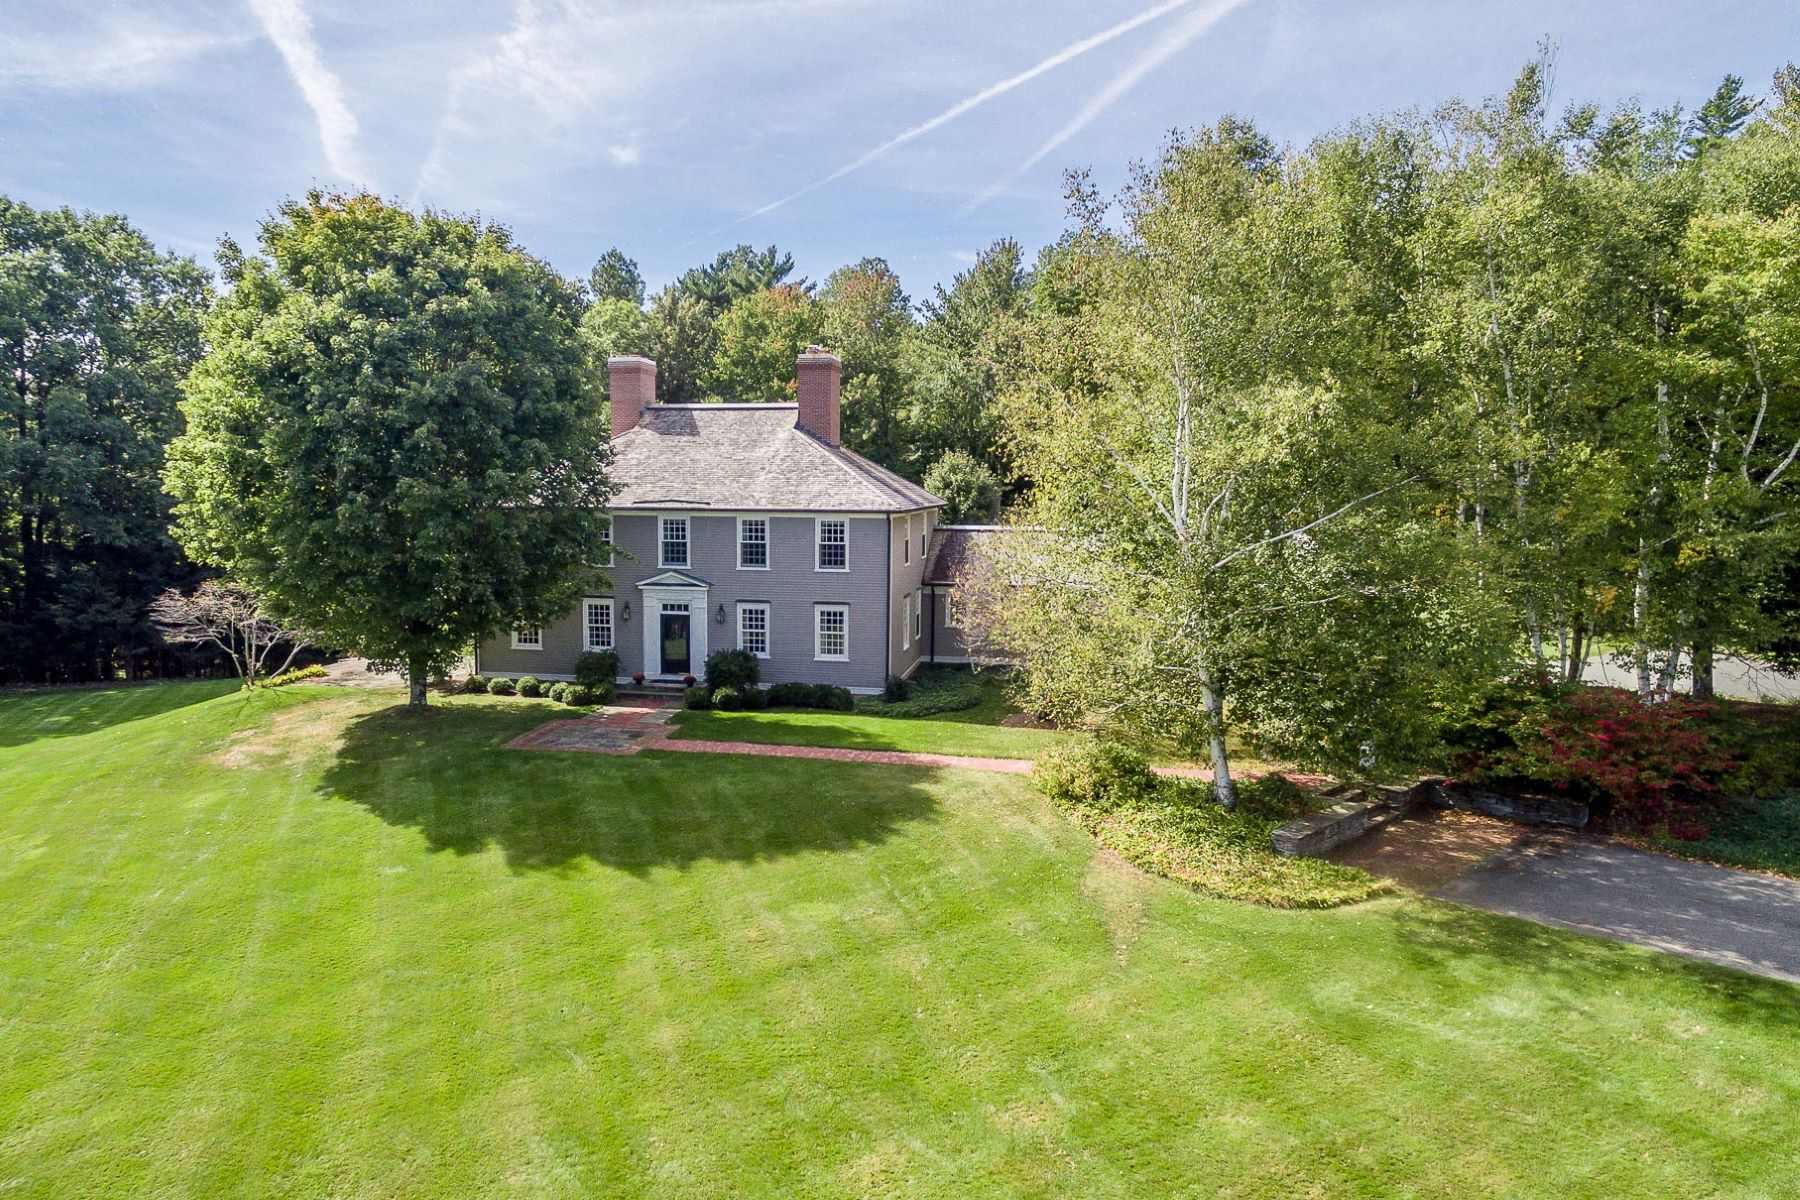 Maison unifamiliale pour l Vente à 2 Parade Ground, Hanover Hanover, New Hampshire, 03755 États-Unis